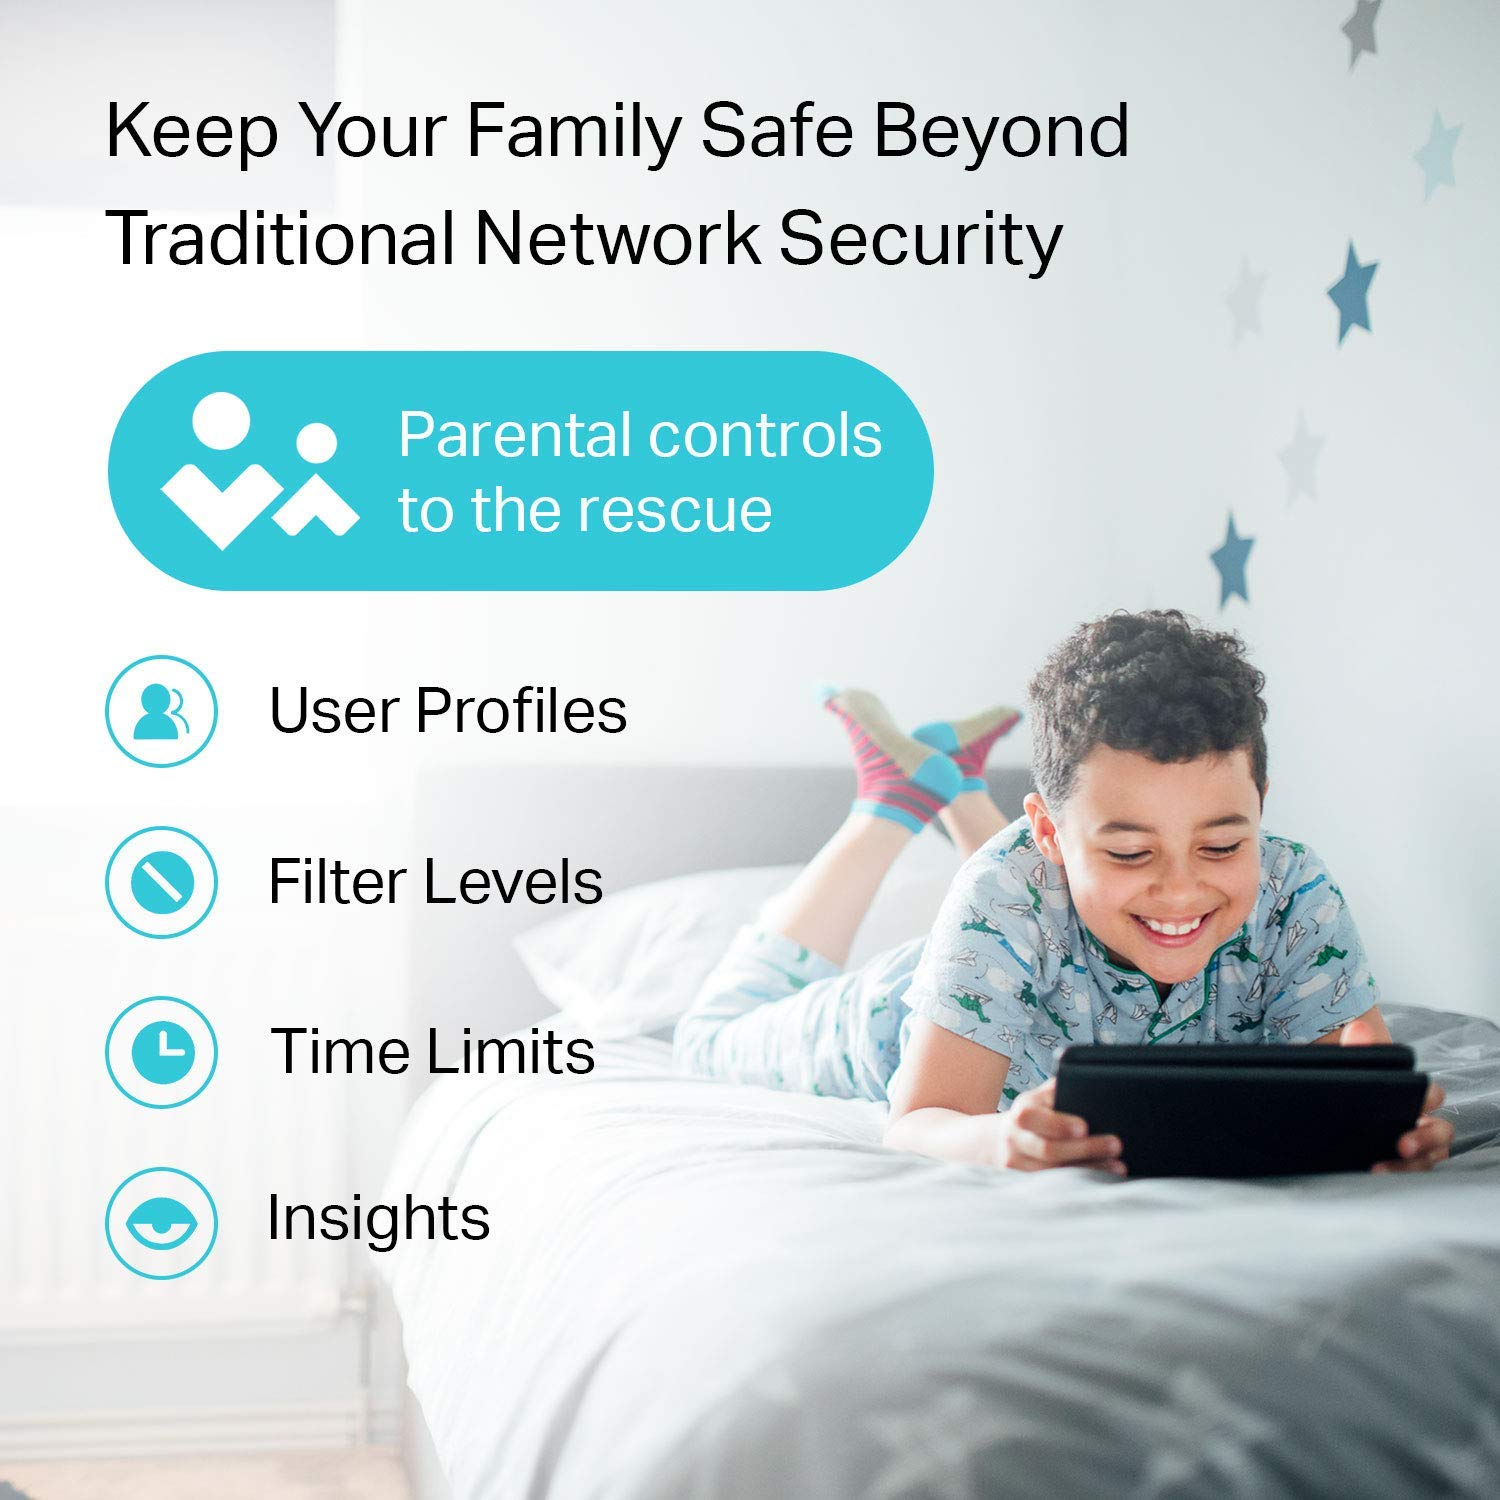 TPLink AC1750 Smart WiFi Router  Dual Band Gigabit Wireless Internet Router for Home Works with